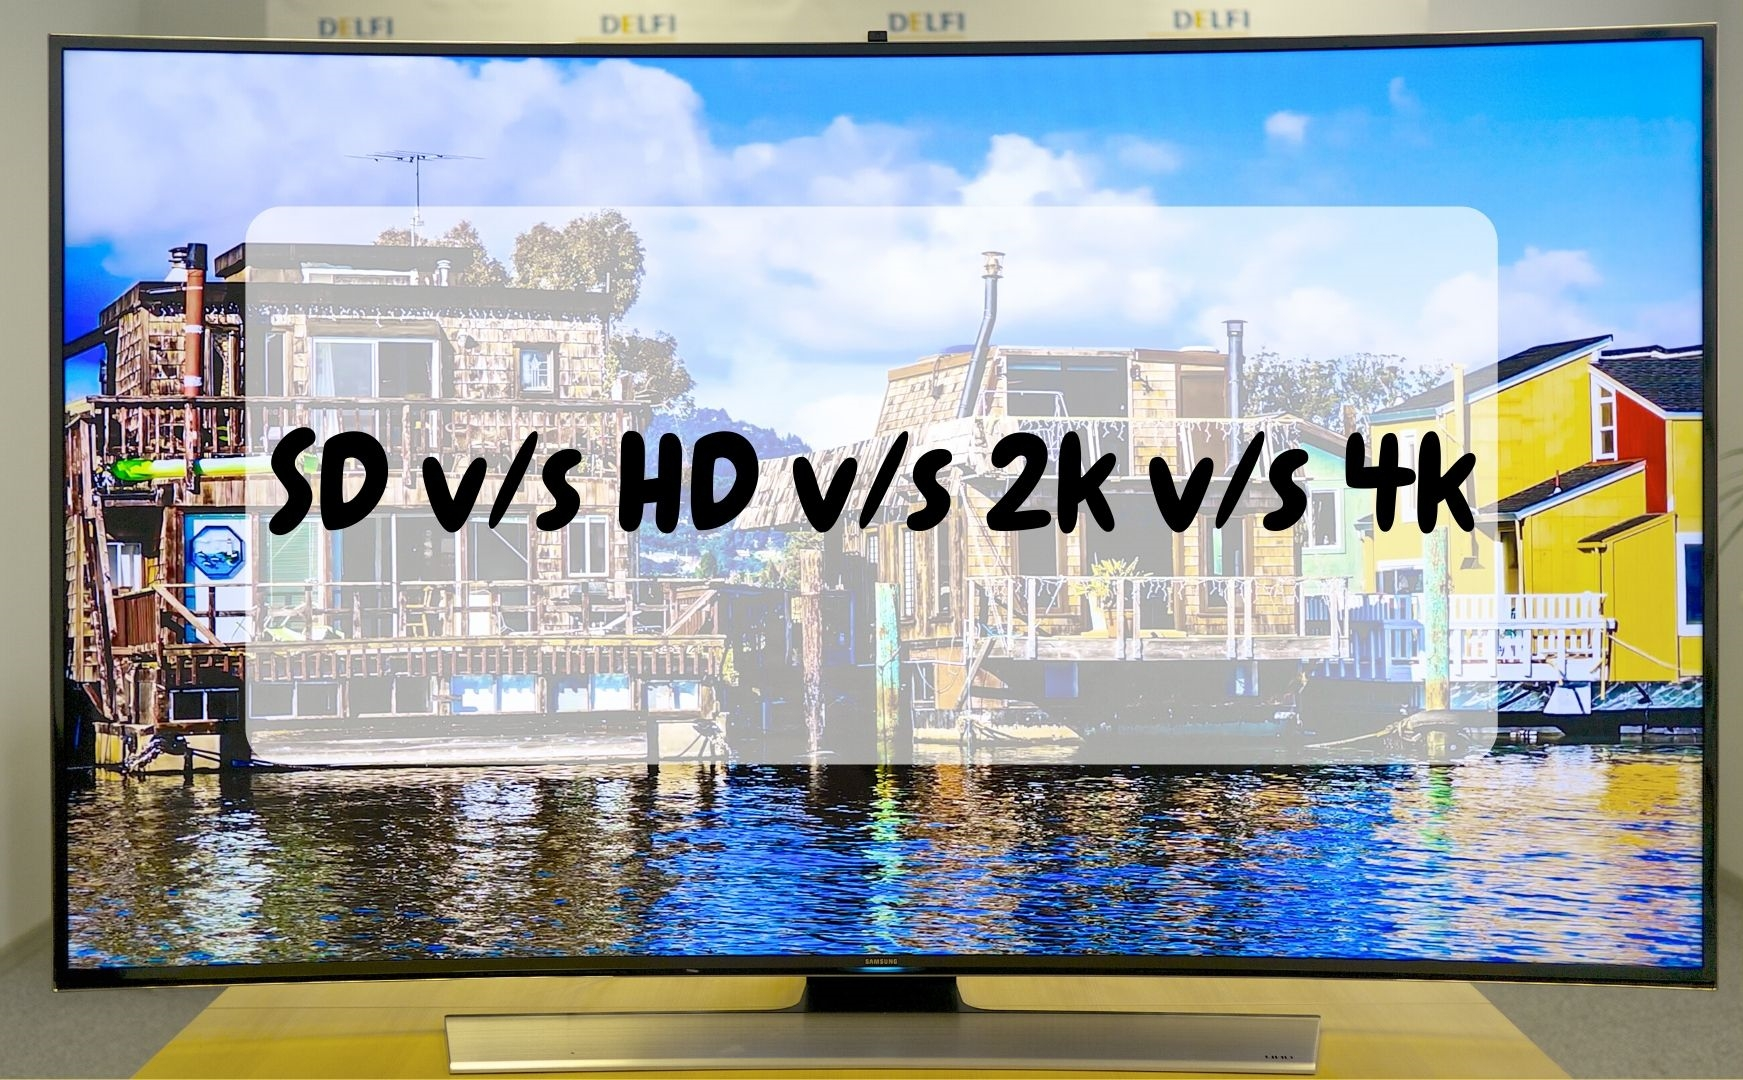 What is the difference between SD, HD, 2k and 4k?